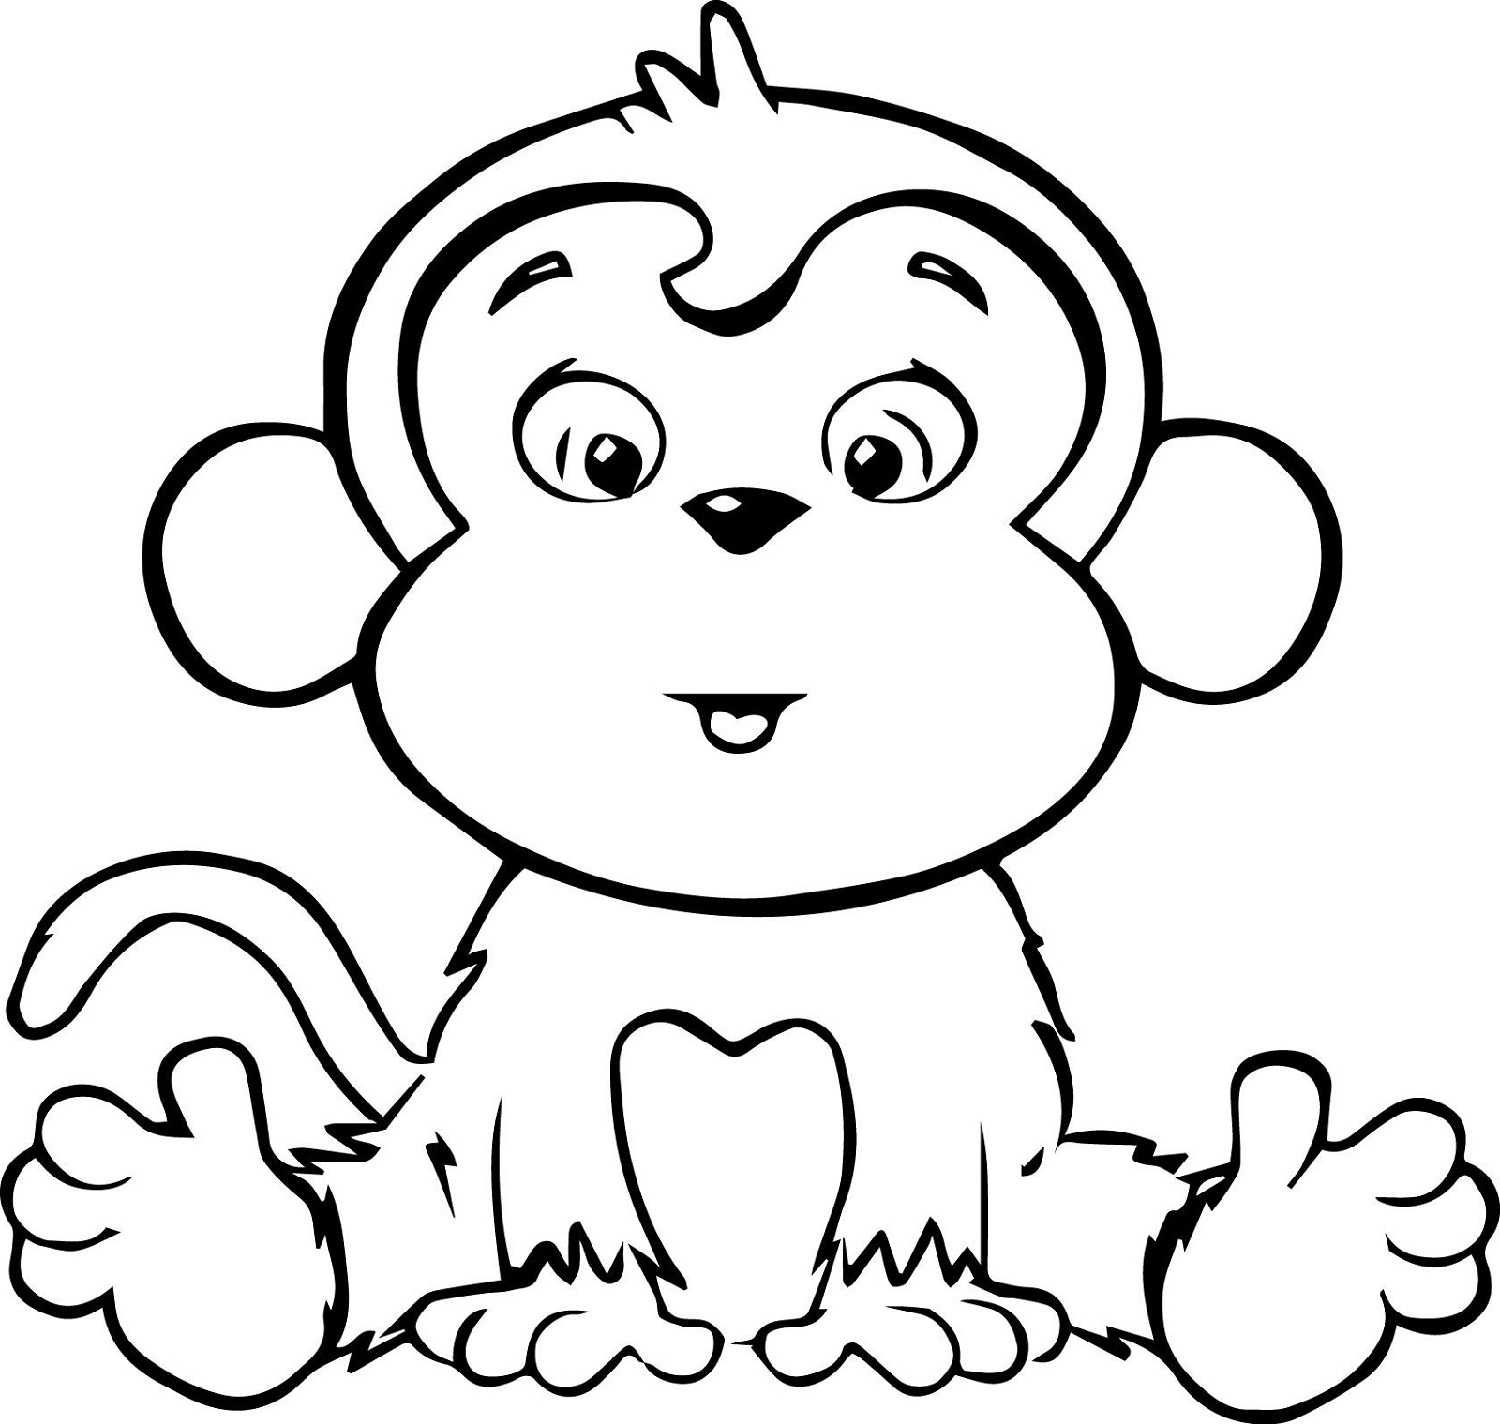 Cute Coloring Pages of Monkeys